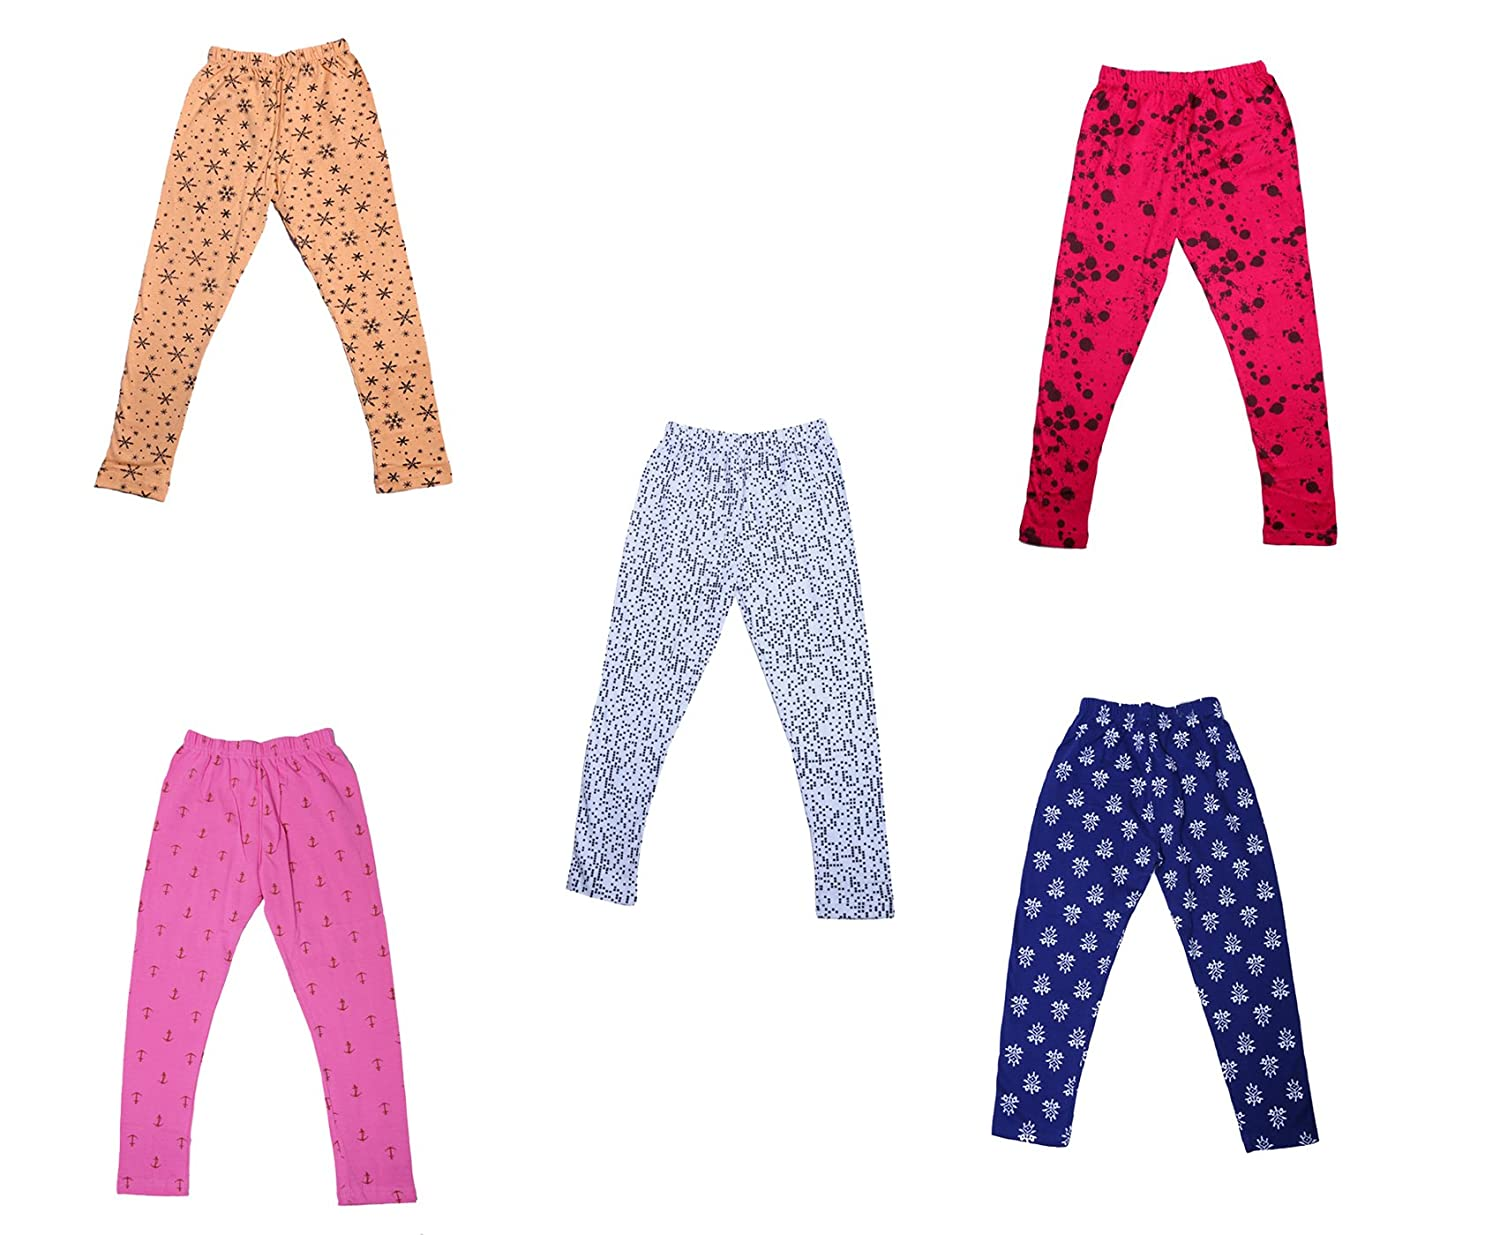 Pack of 5 Indistar Girls Super Soft and Stylish Cotton Printed Churidar Legging Pants